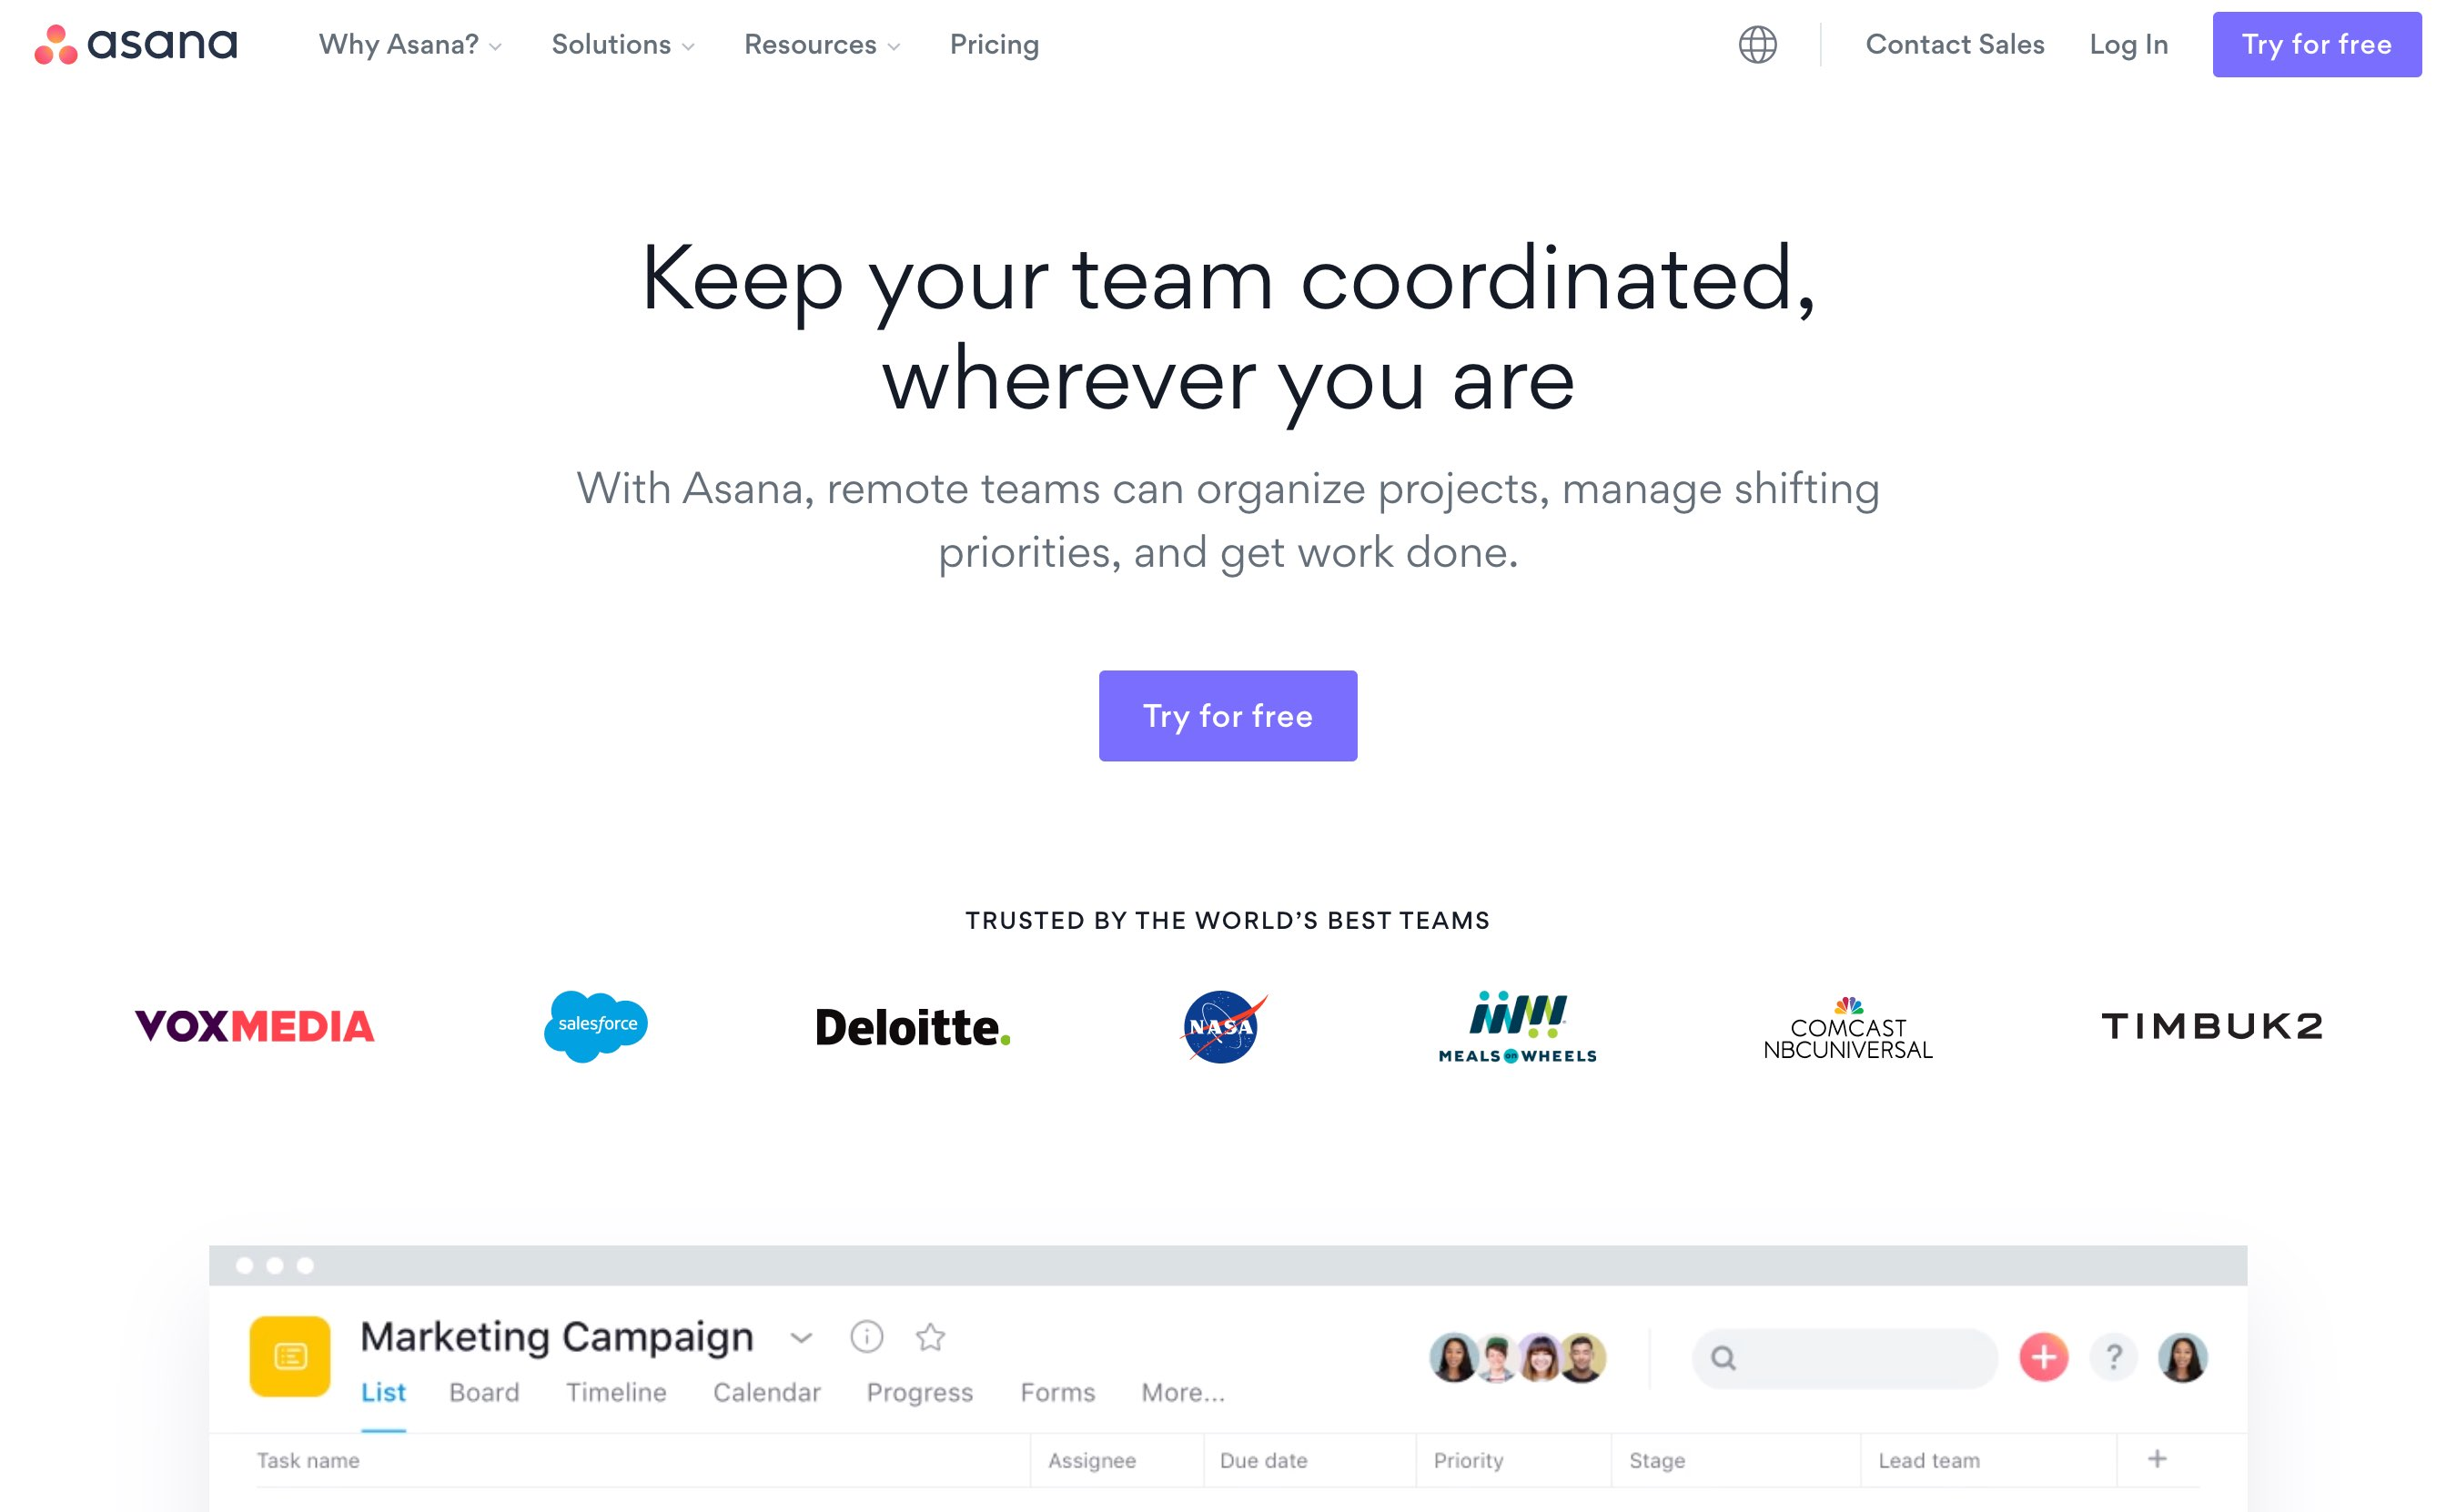 Asana homepage in August 2020